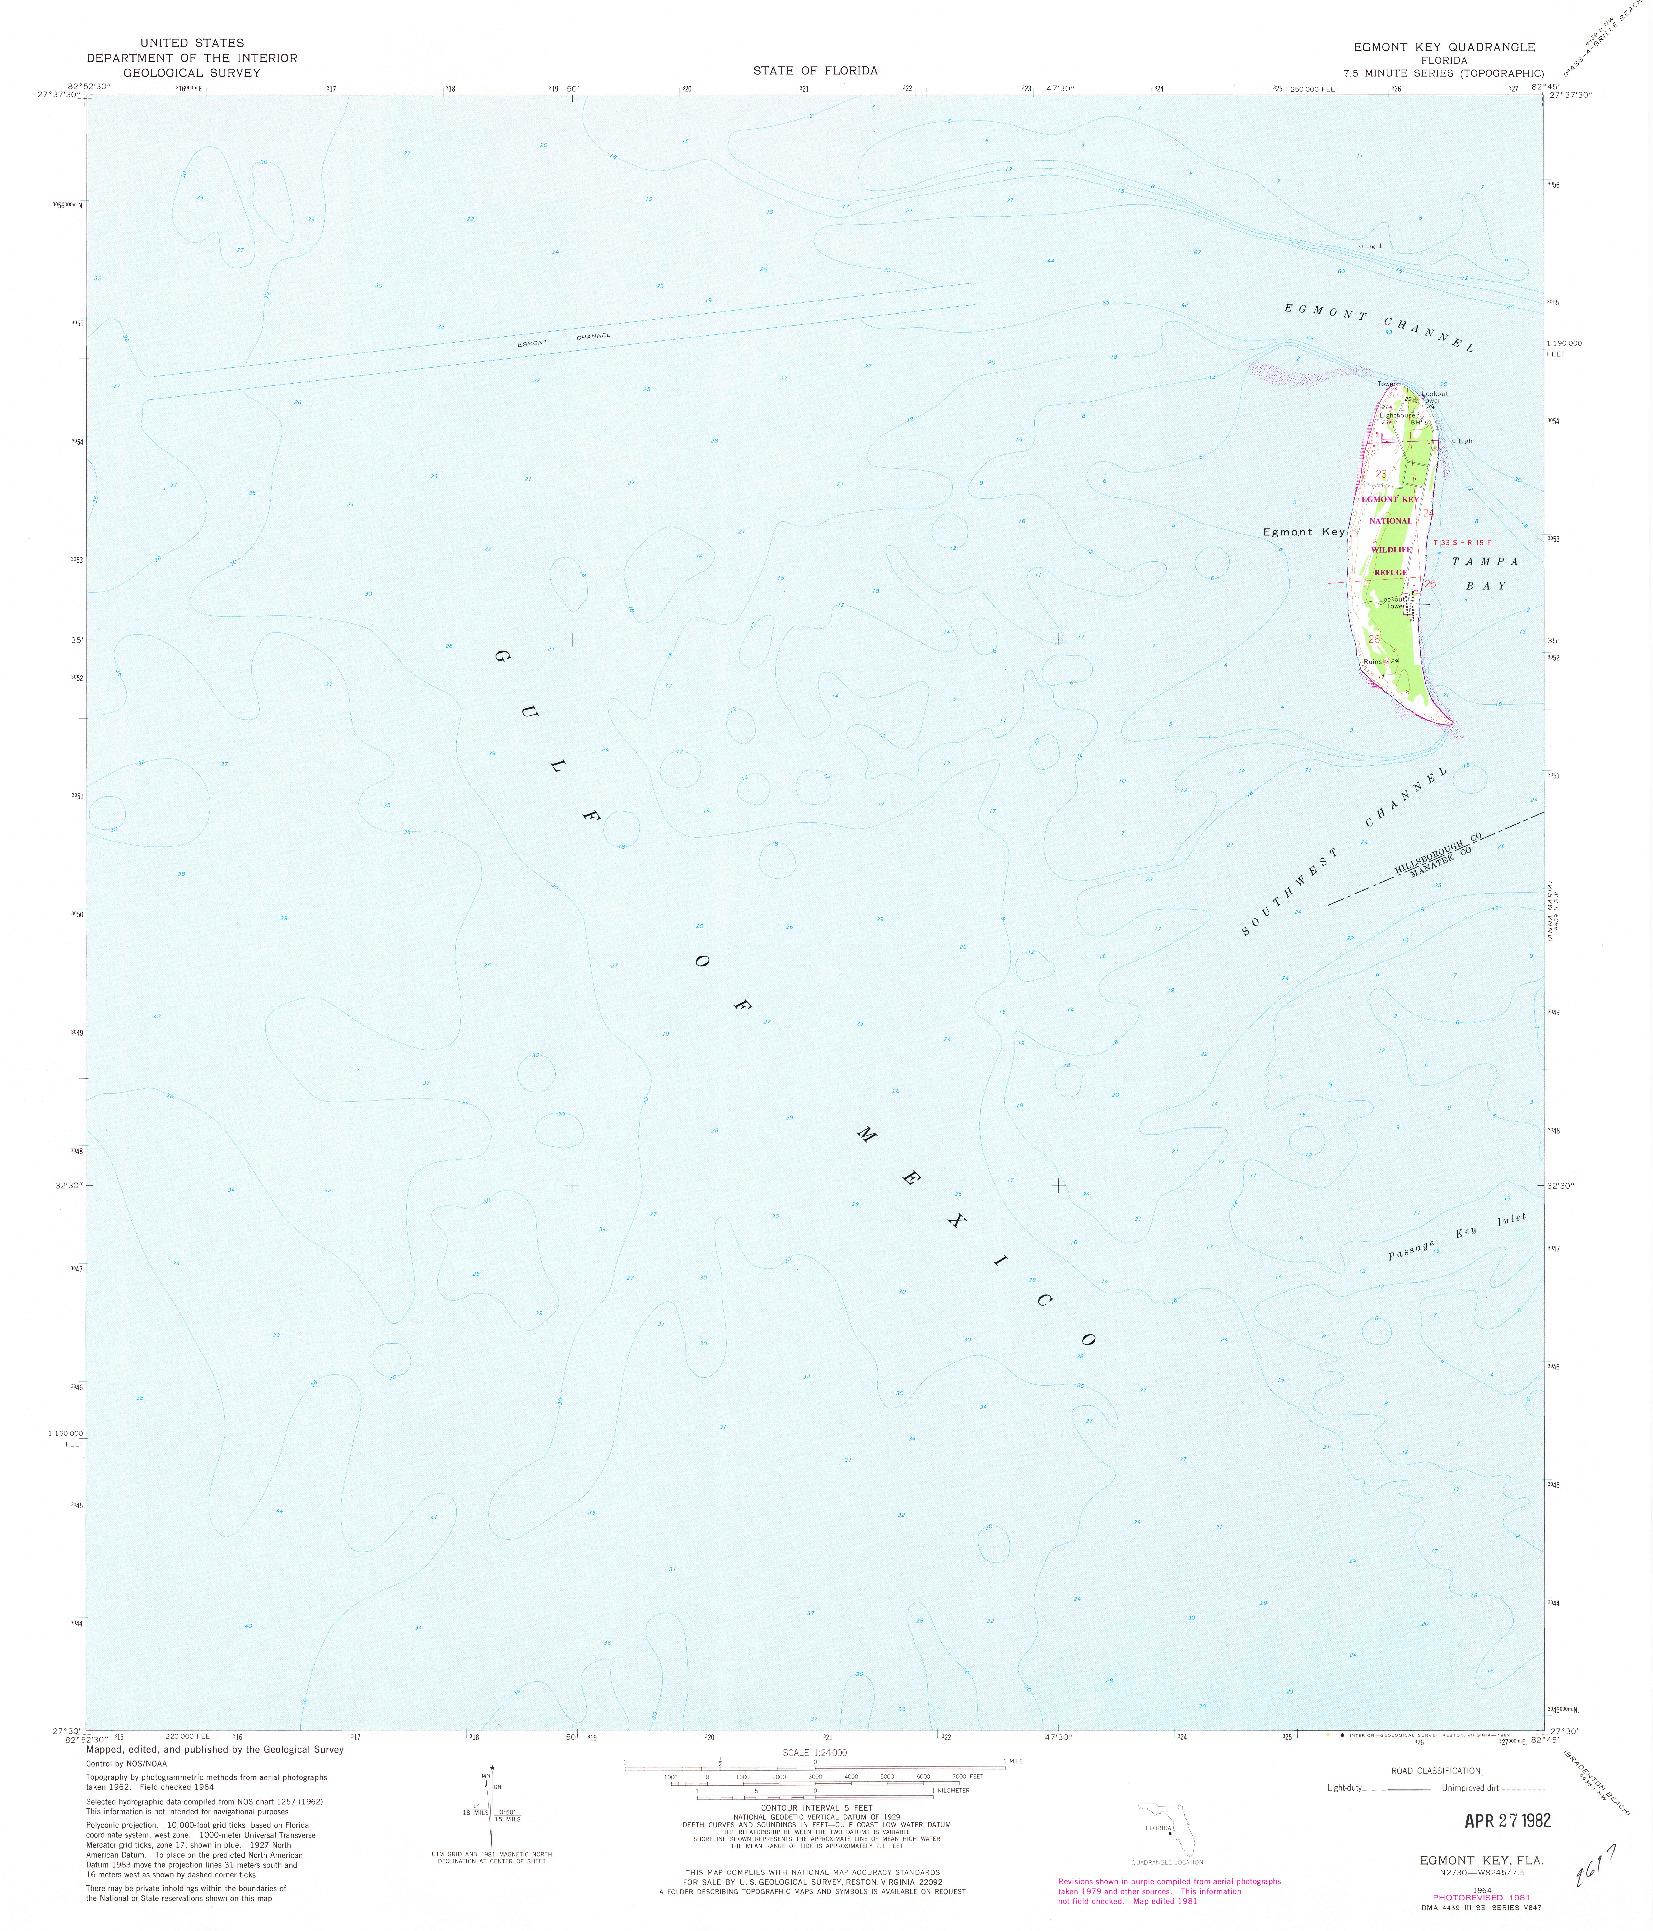 USGS 1:24000-SCALE QUADRANGLE FOR EGMONT KEY, FL 1964